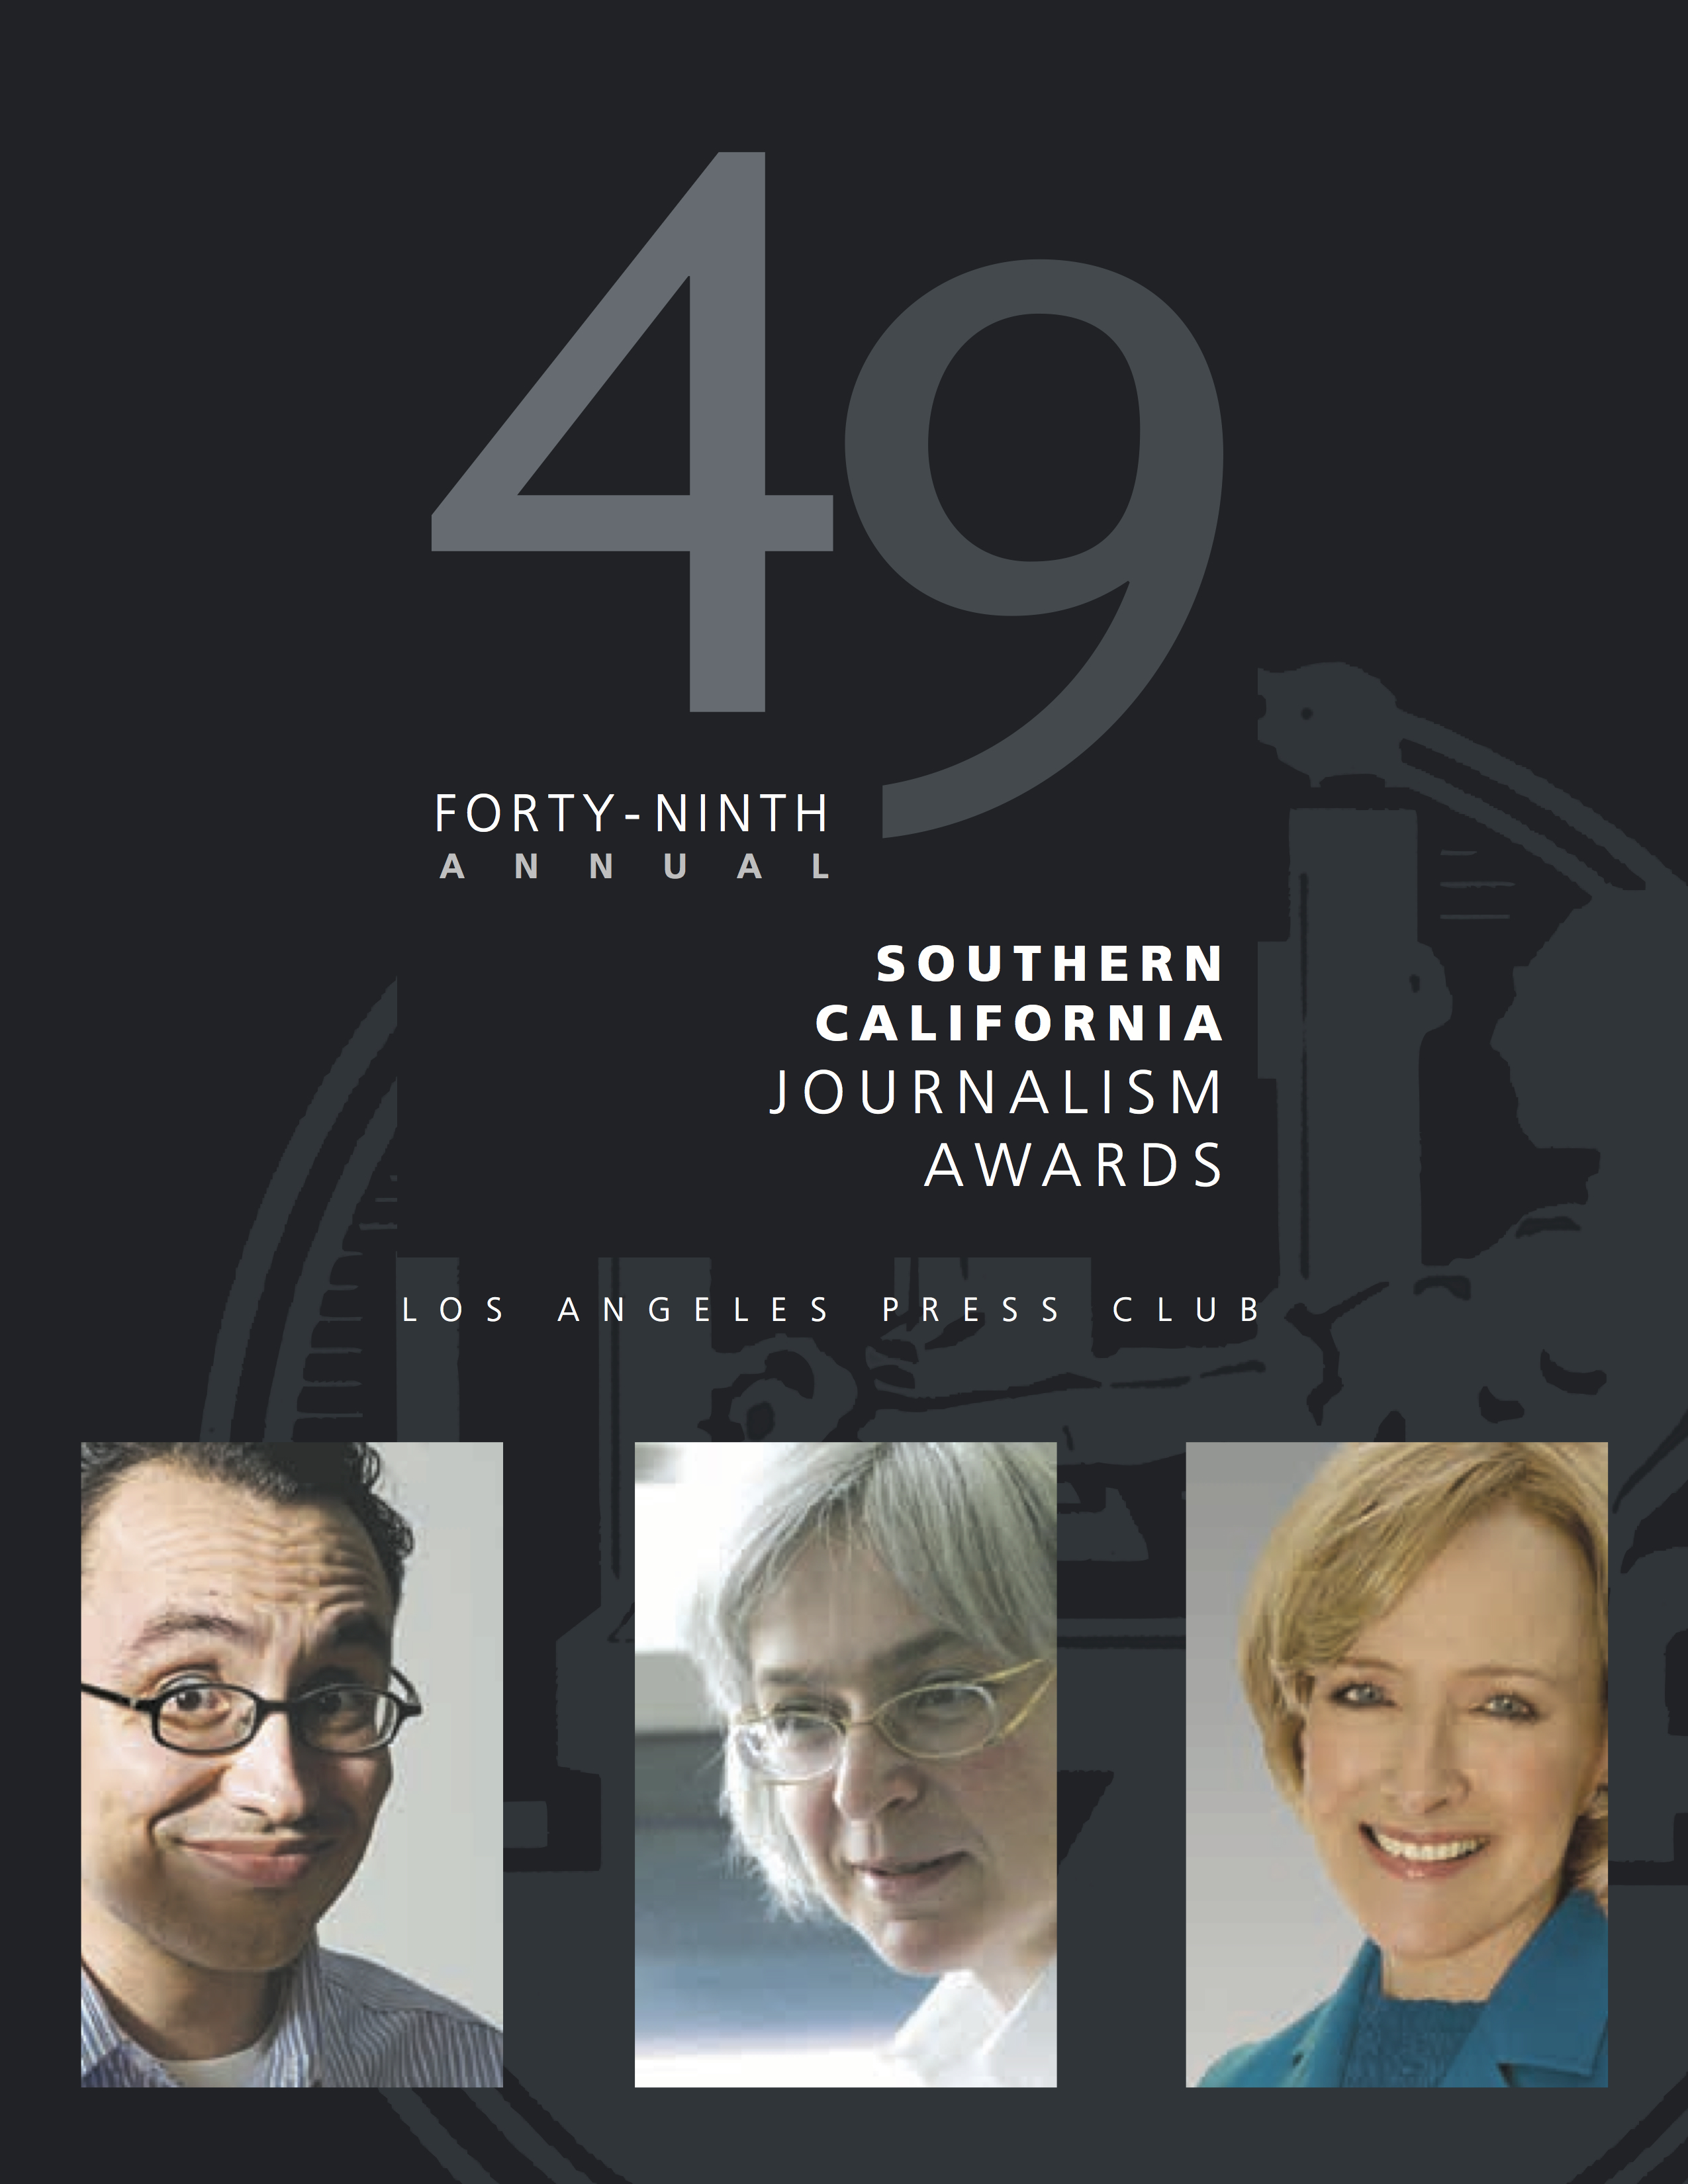 2007 SOCAL COVER